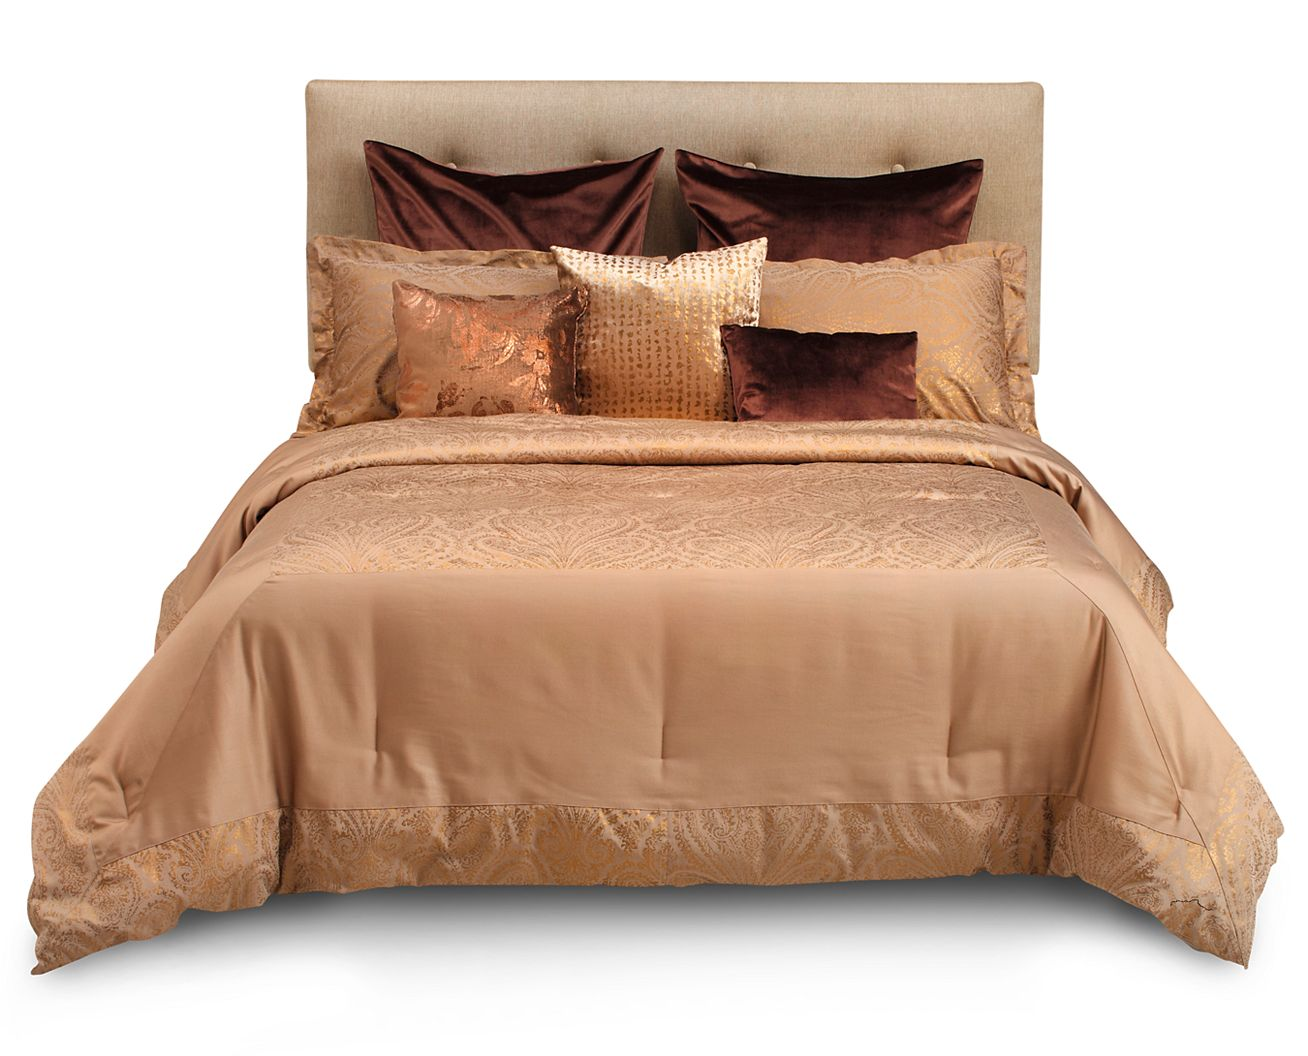 Autumn Glow Comforter Set  Furniture Row